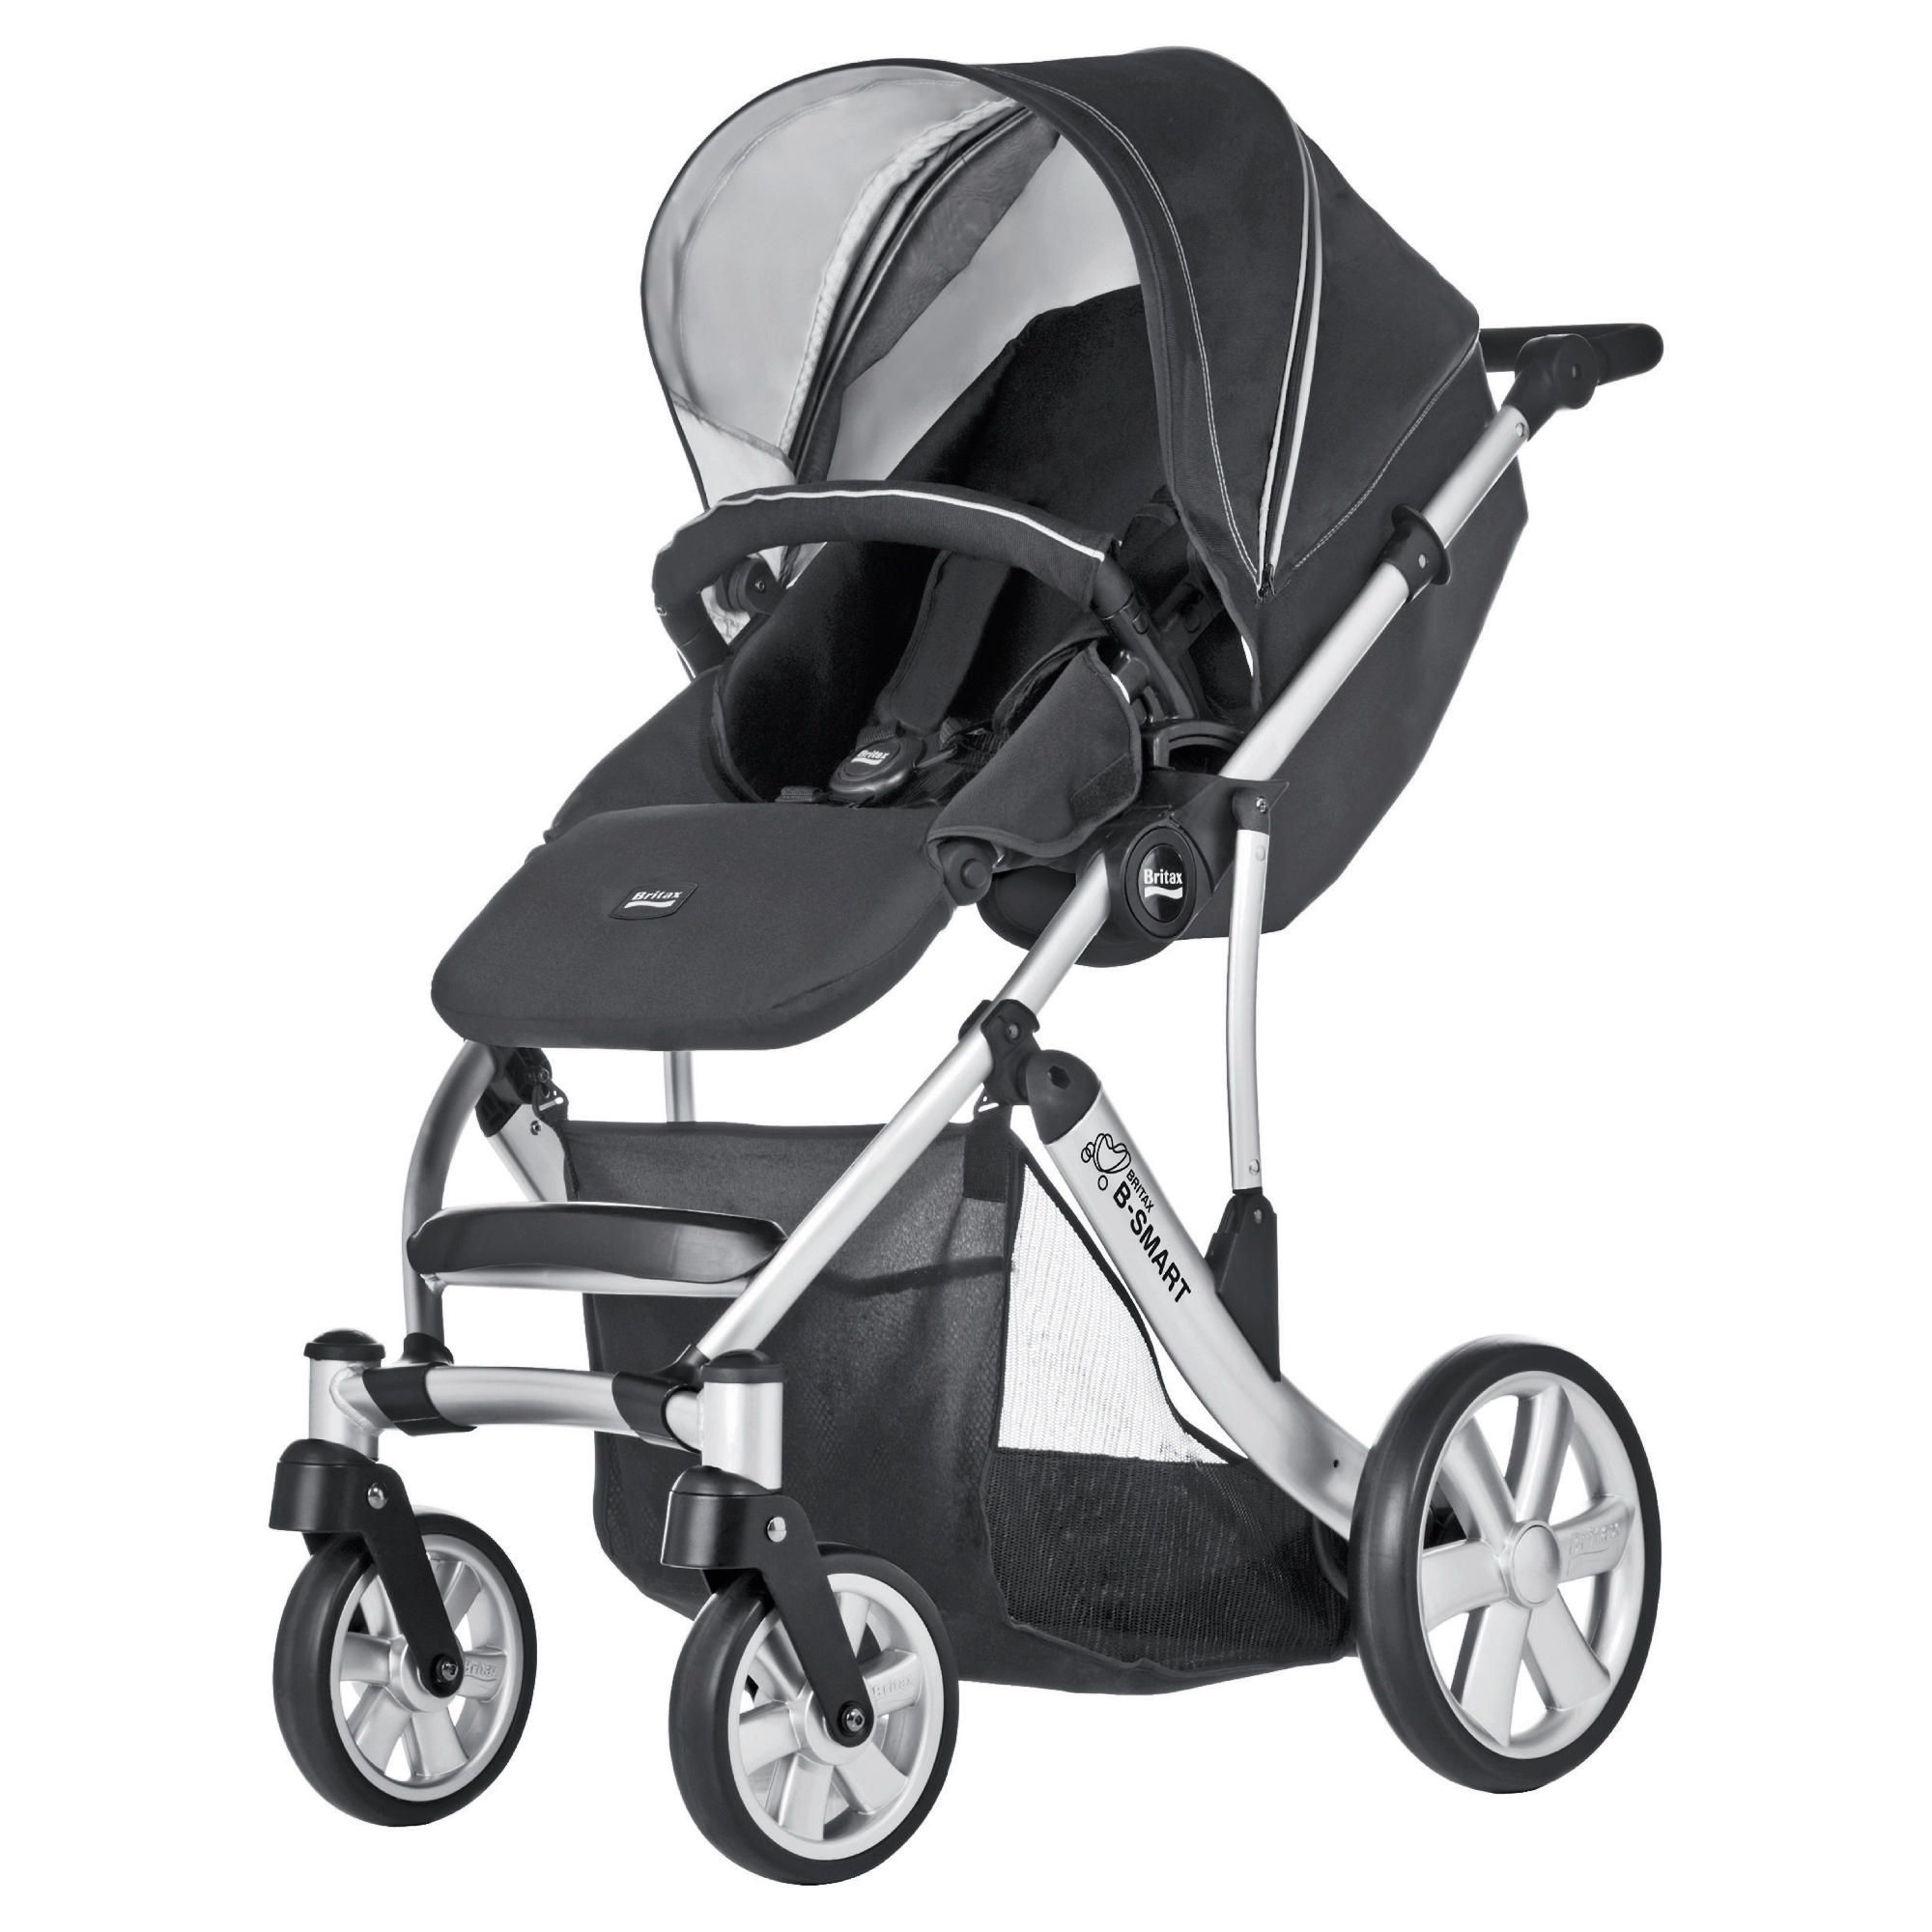 Britax B Smart 4 Neon Pushchair, Black at Tesco Direct